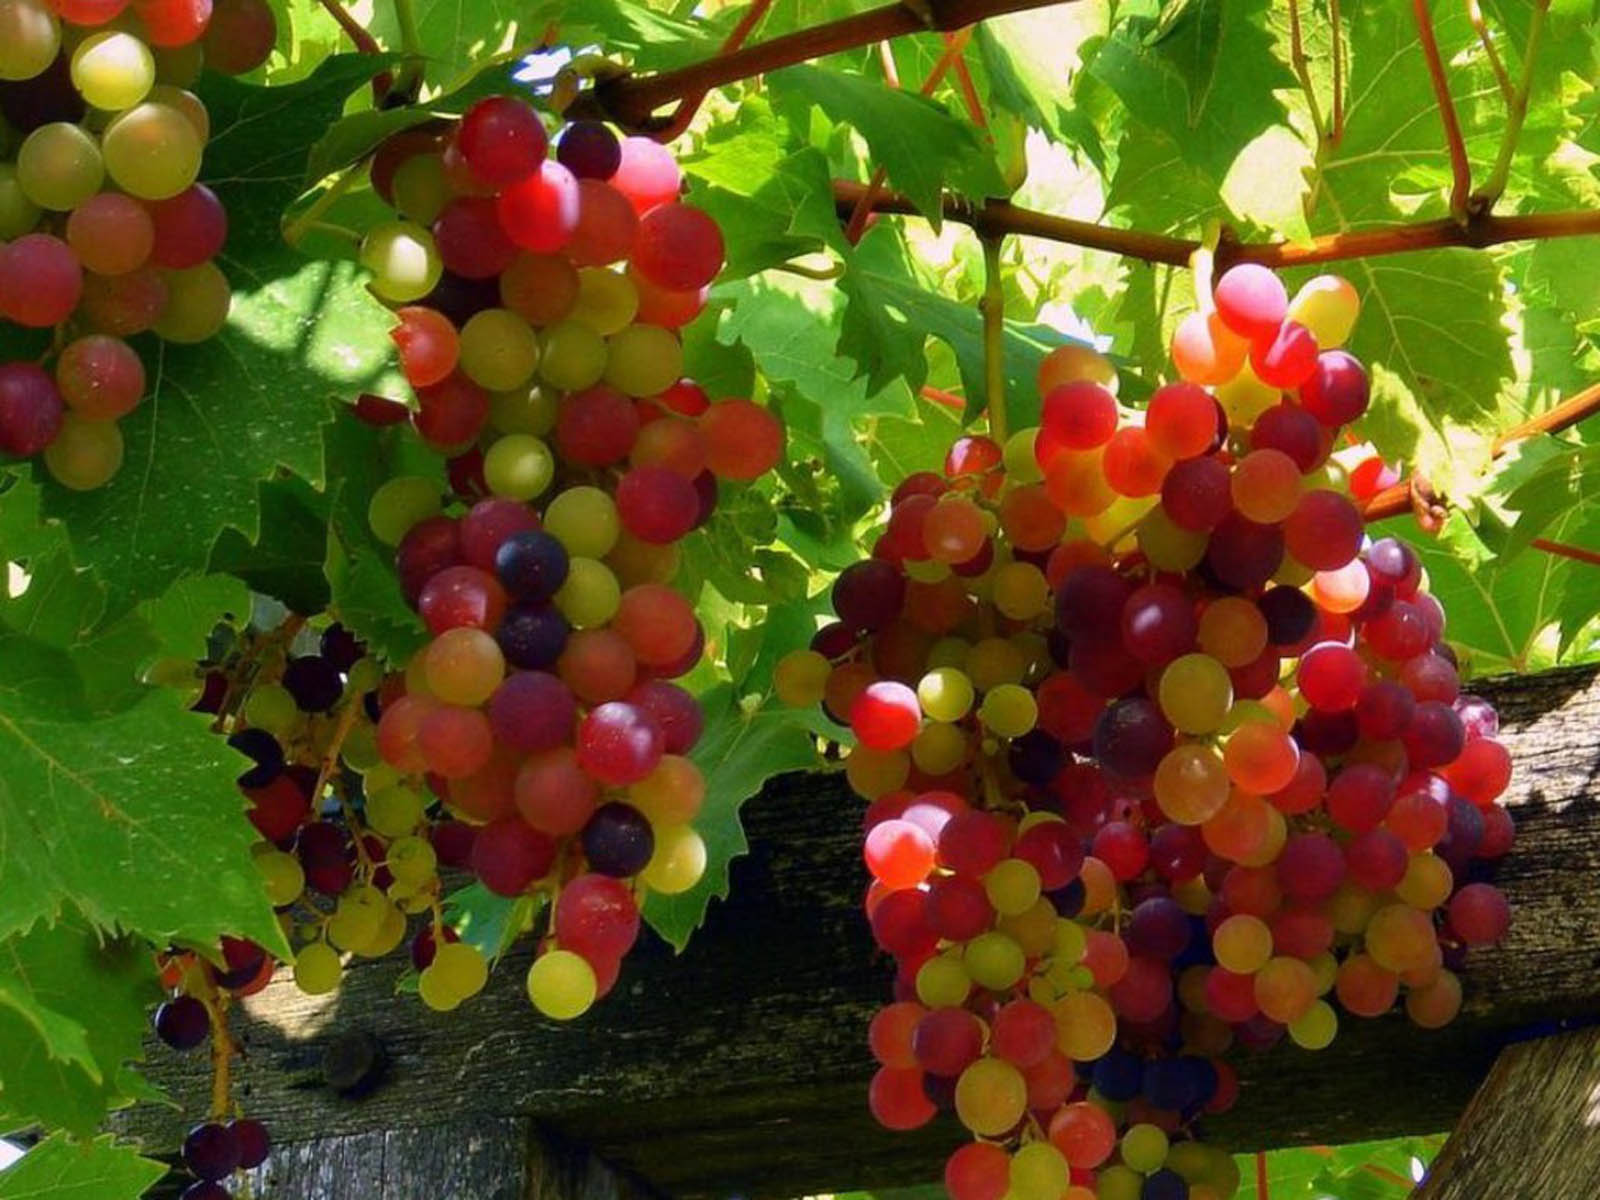 Tag Red Grapes Wallpapers Images Photos Pictures and Backgrounds 1600x1200